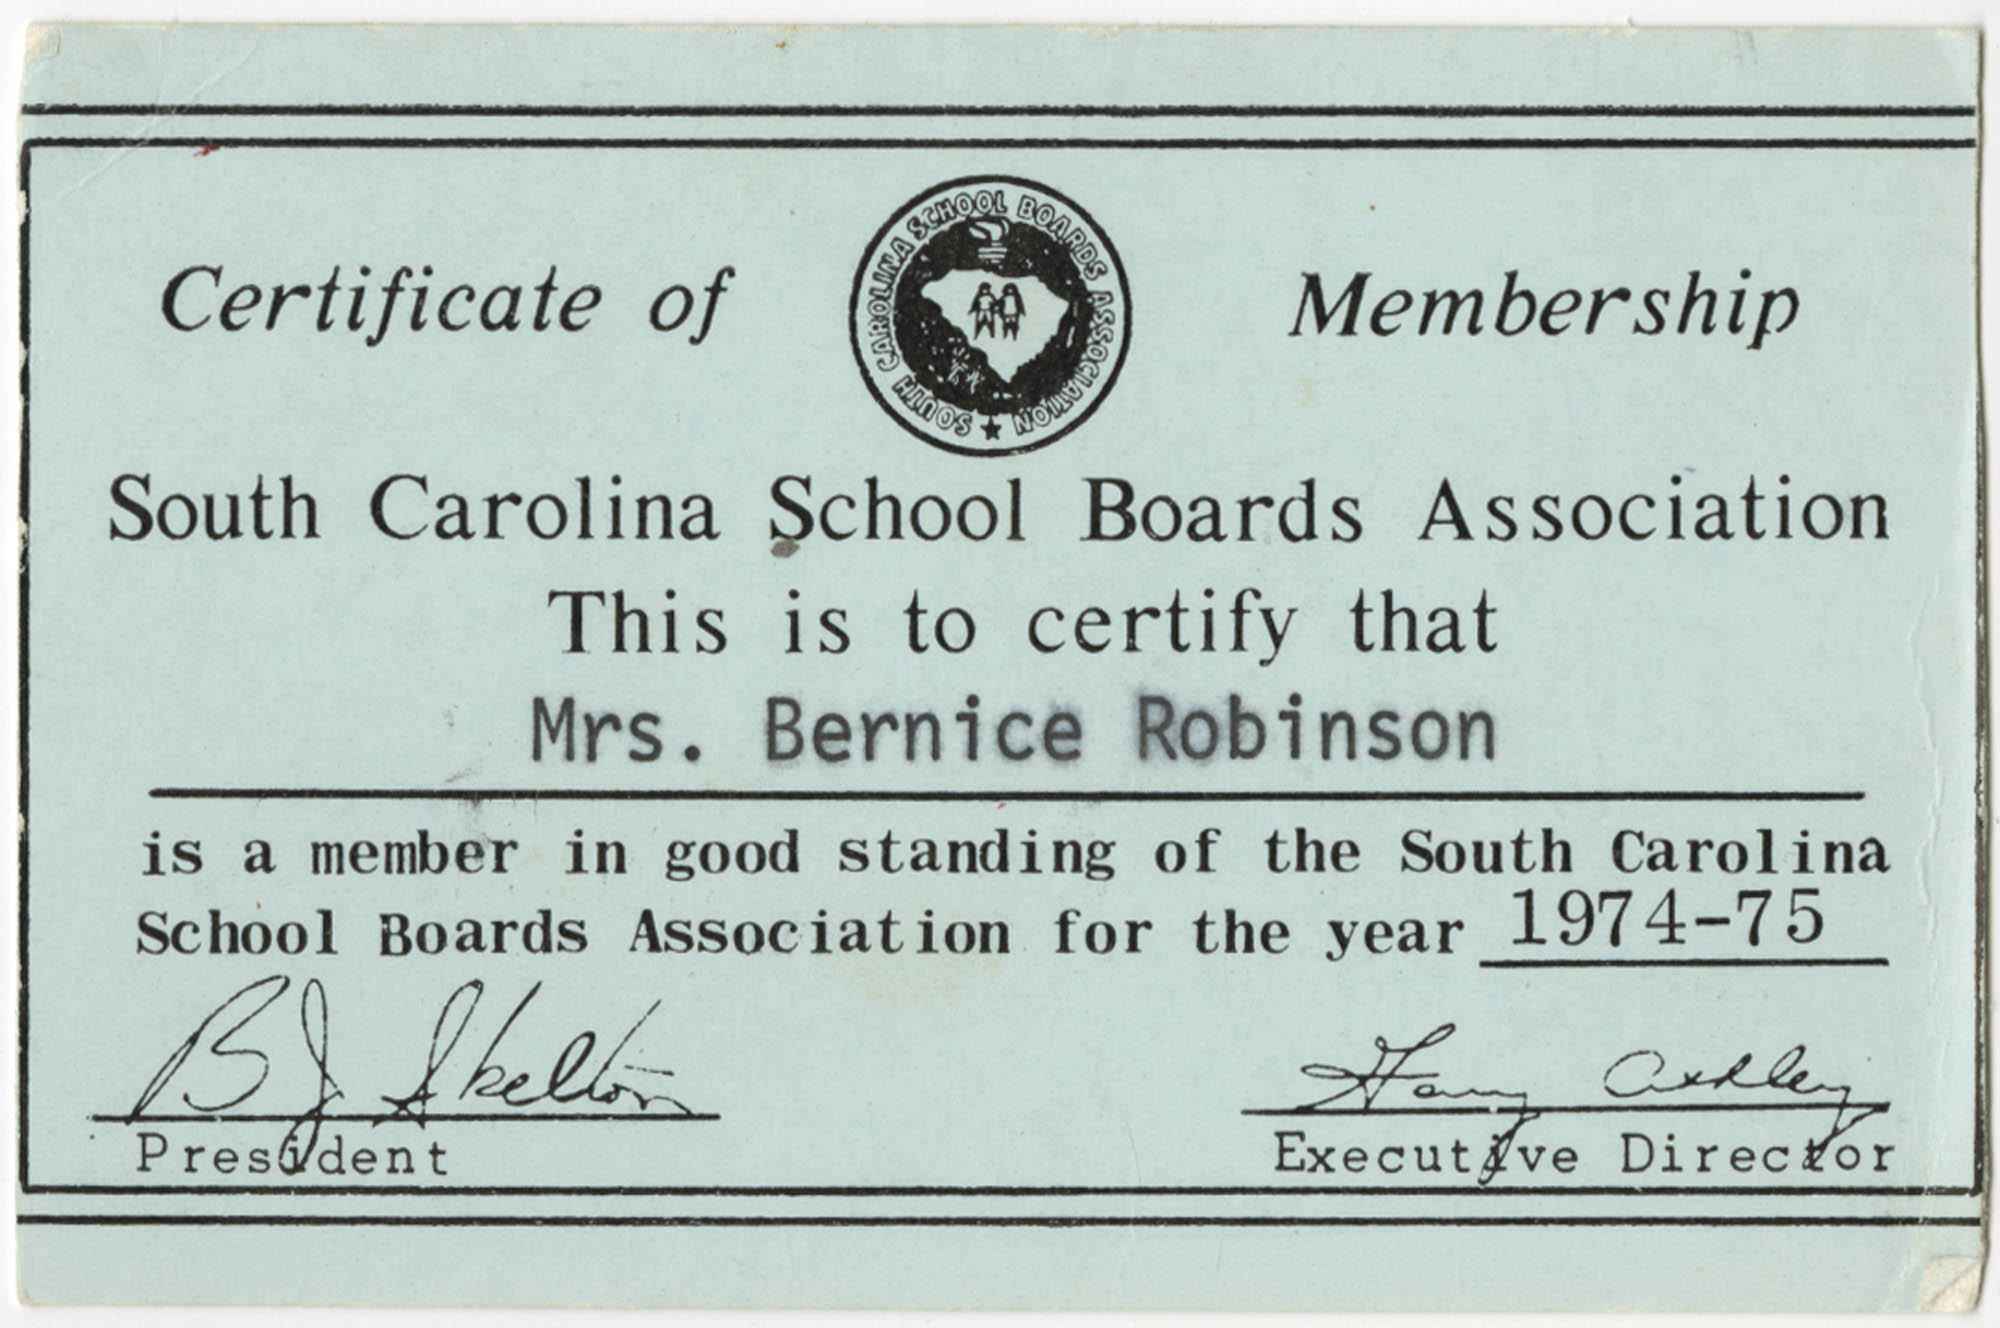 Bernice Robinson's South Carolina School Boards Association Certificate of Membership Card